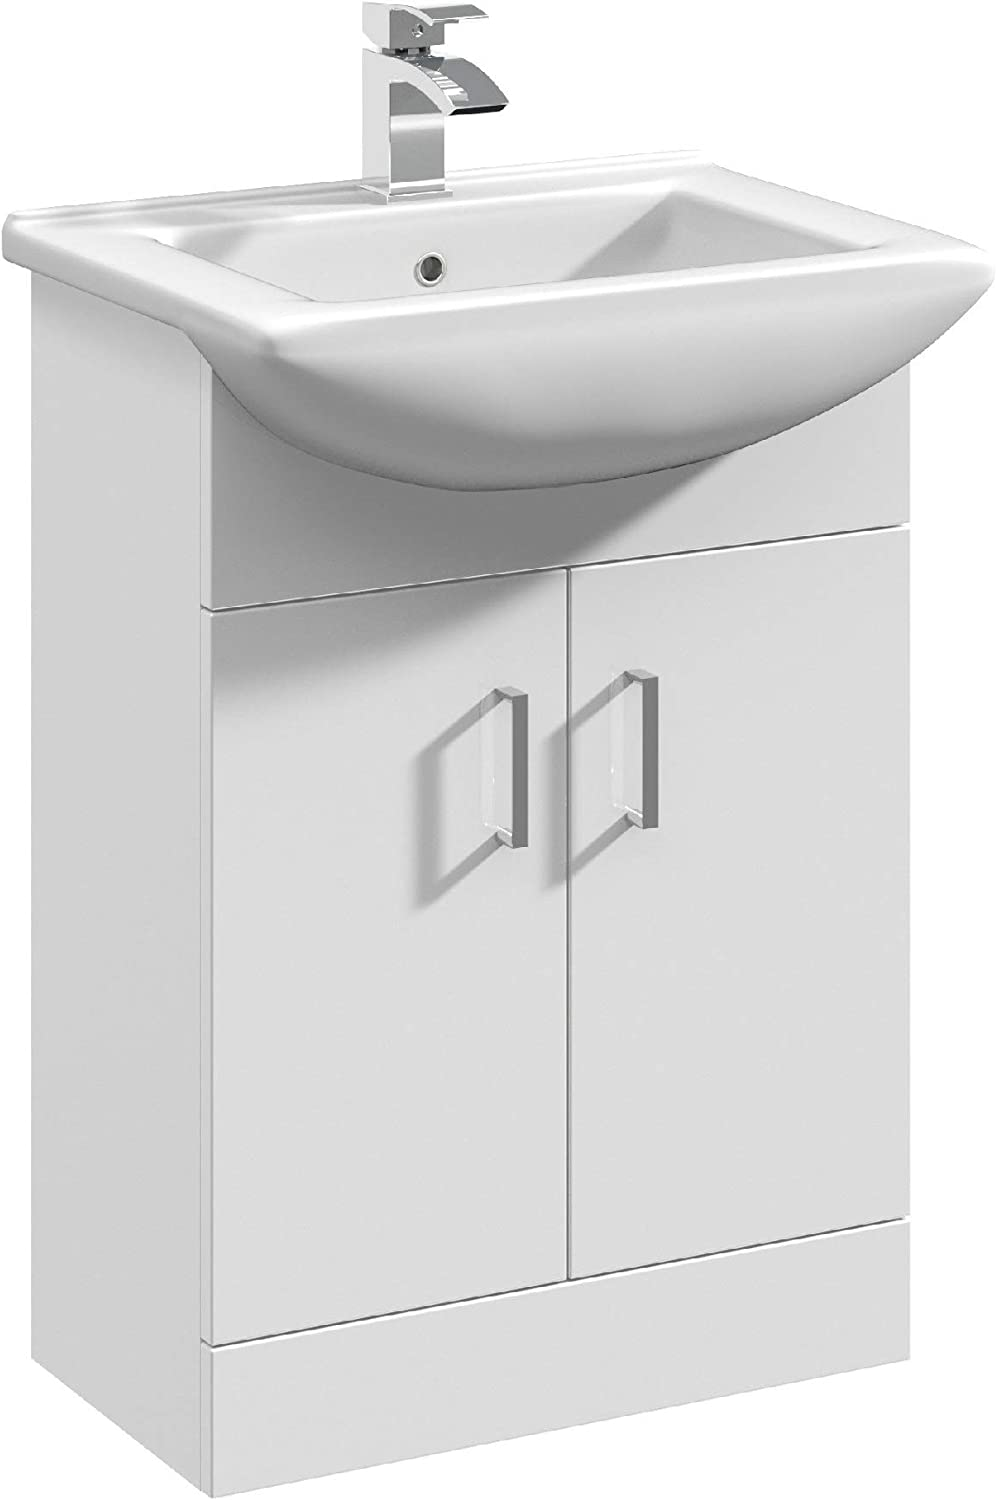 Mayford Floor Standing 550mm Cabinet & Basin 2